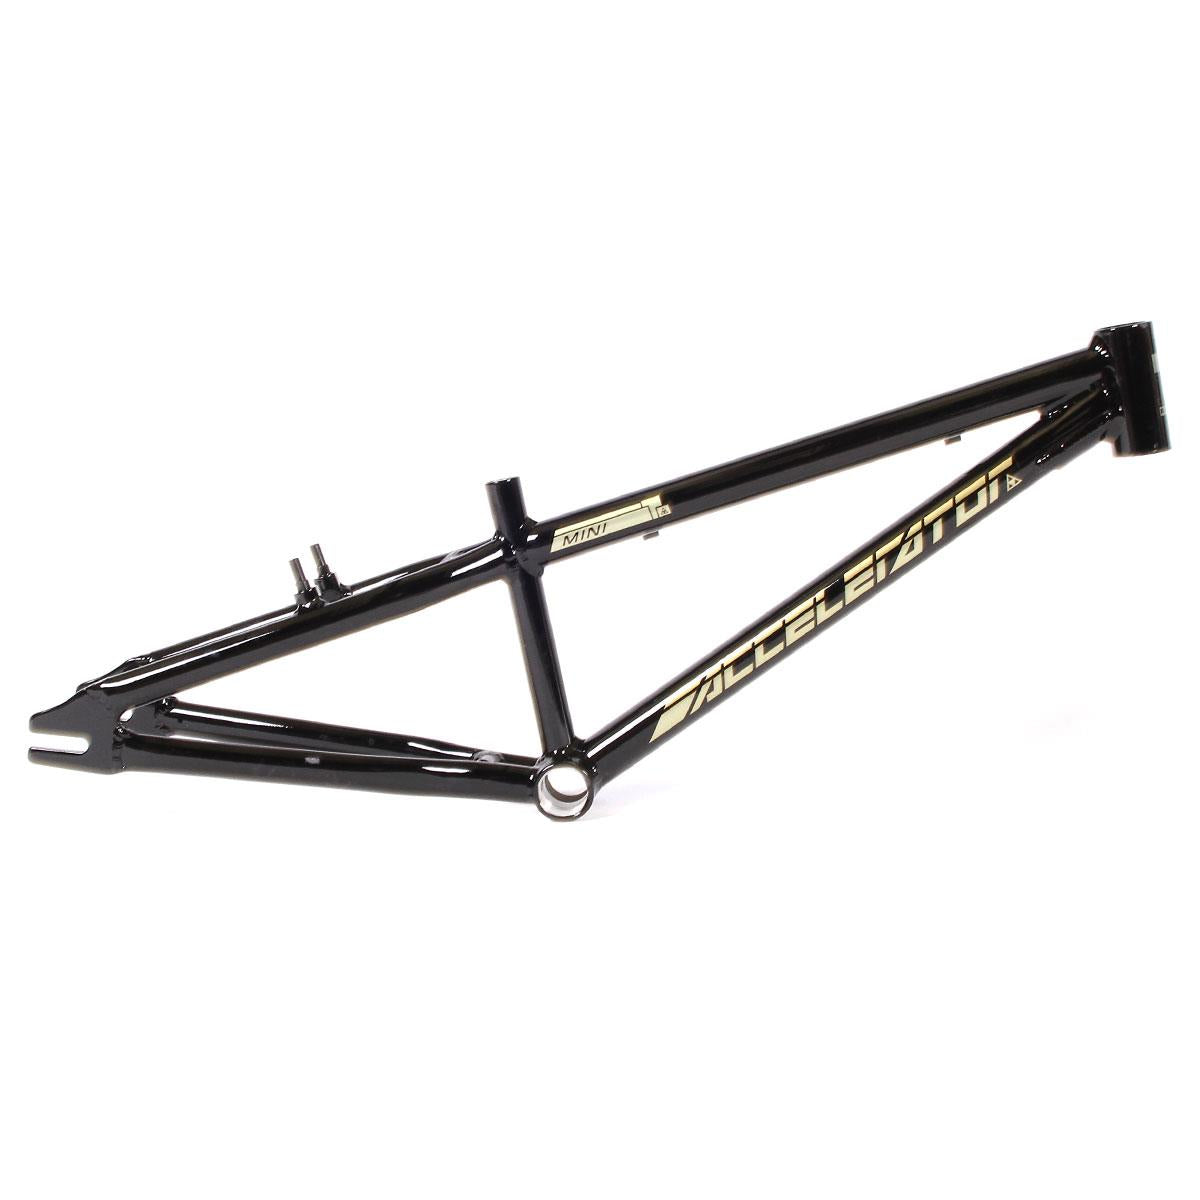 Jet BMX Accelerate Mini Race Frame